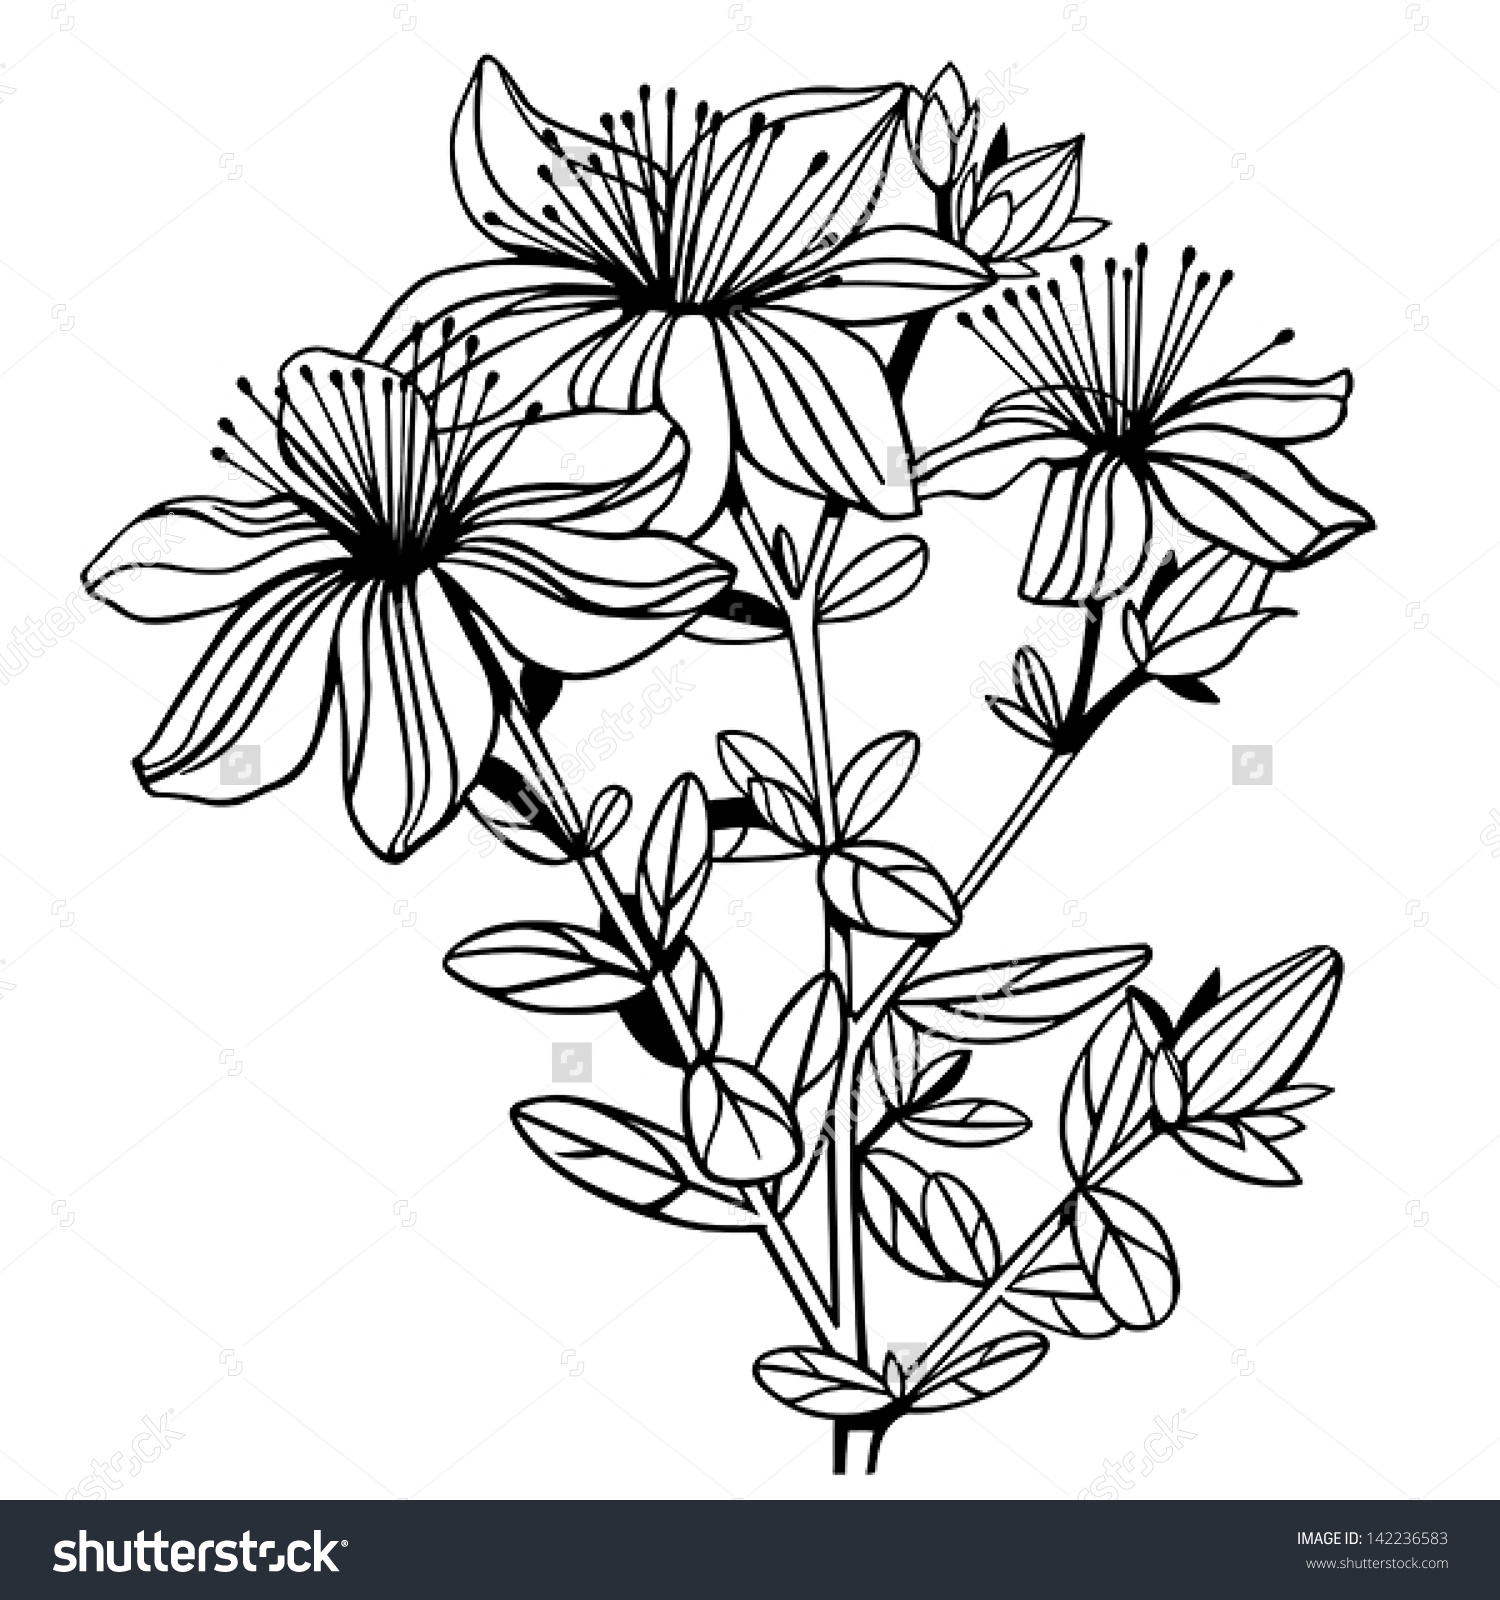 St John's Wort clipart #19, Download drawings